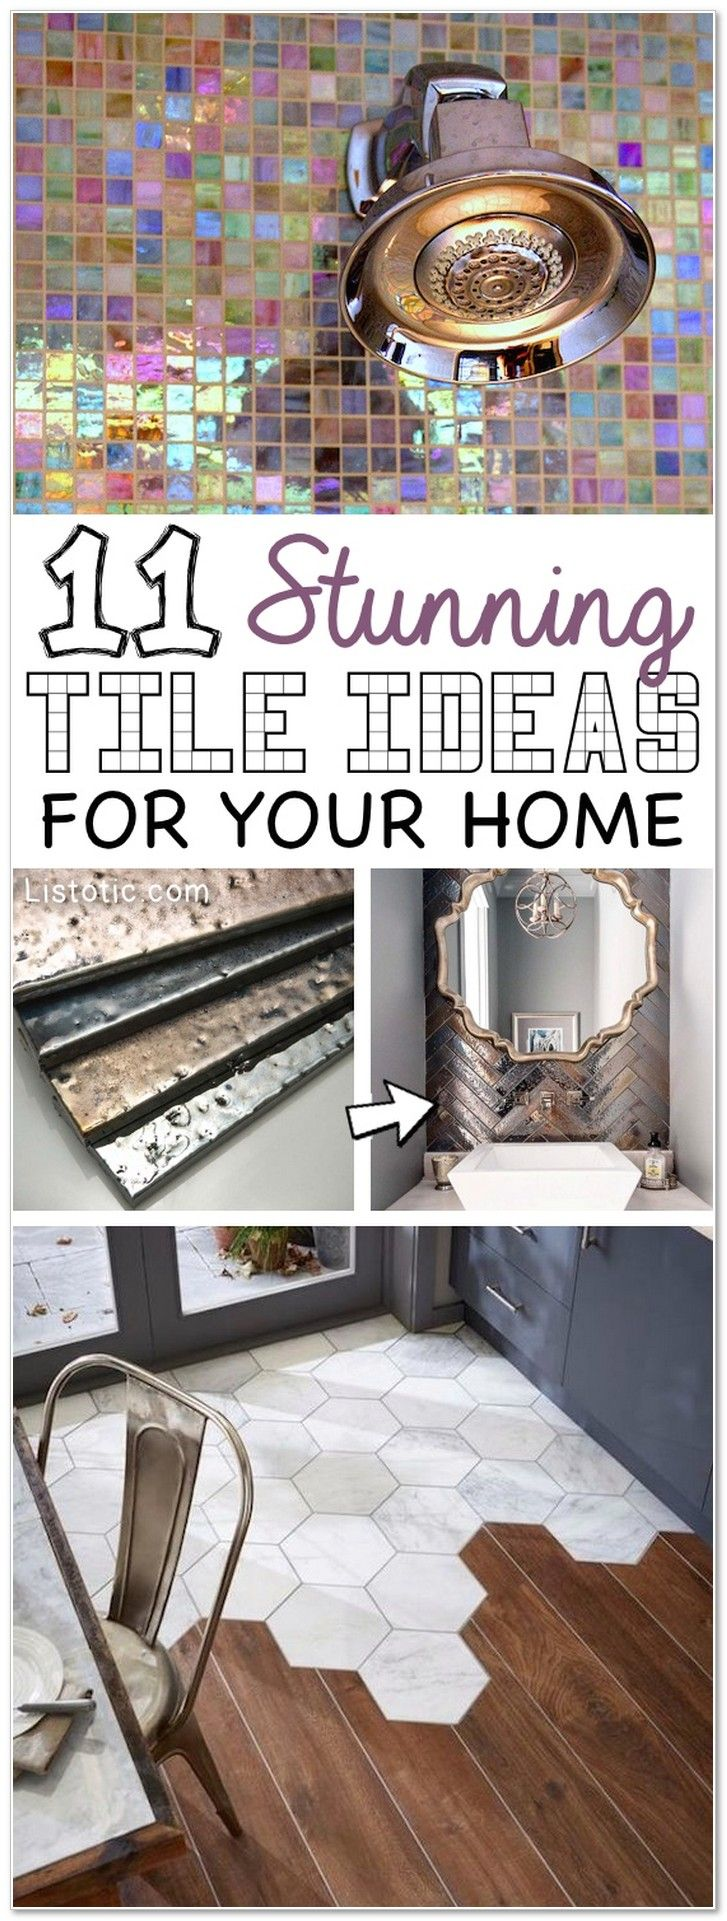 11 Stunning Tile Ideas For Your Home